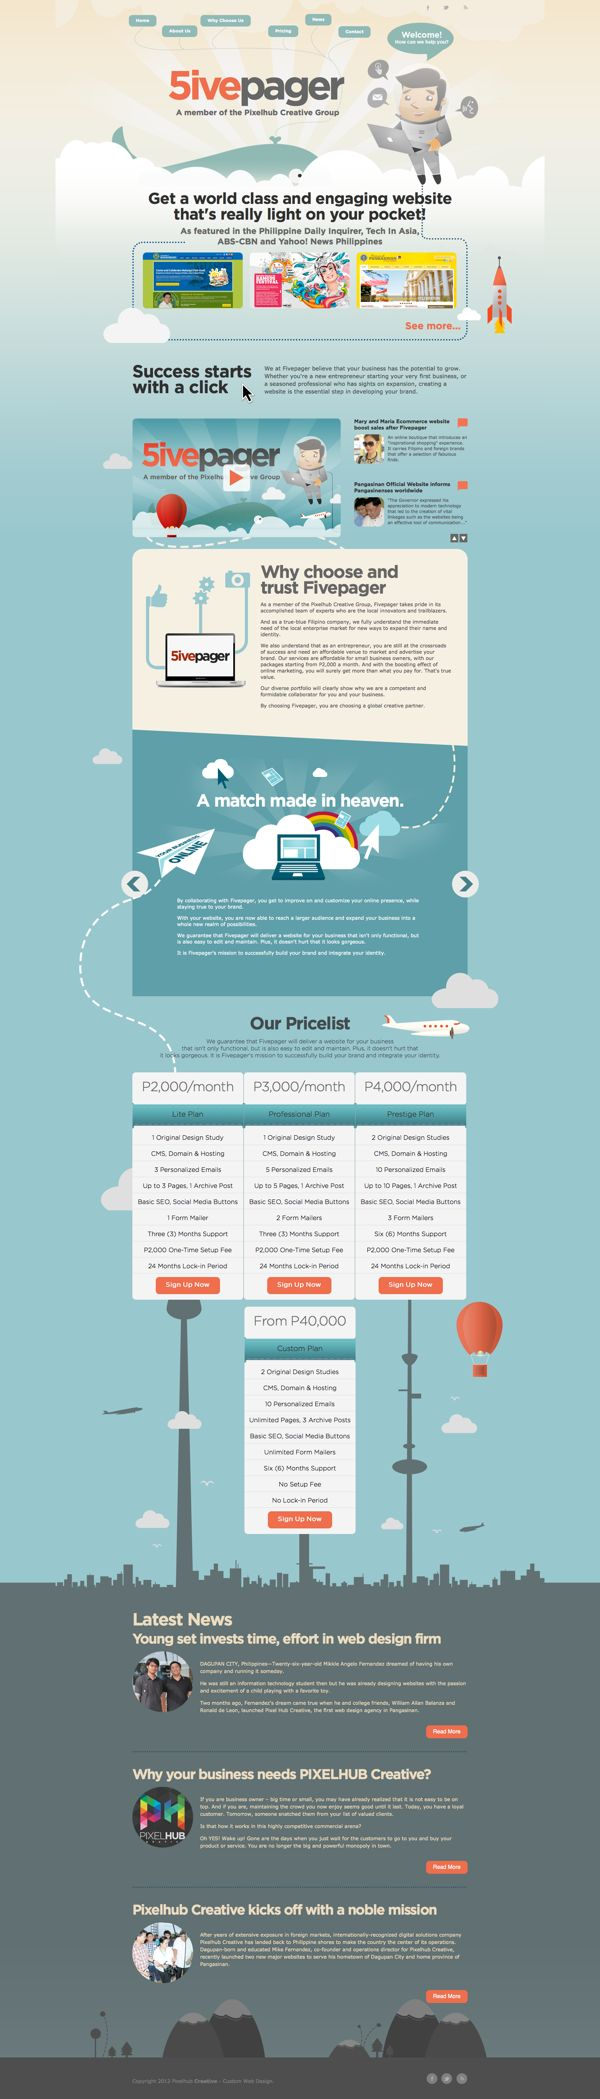 Unique Web Design, 5ive Pager #WebDesign #Design (http://www.pinterest.com/aldenchong/)